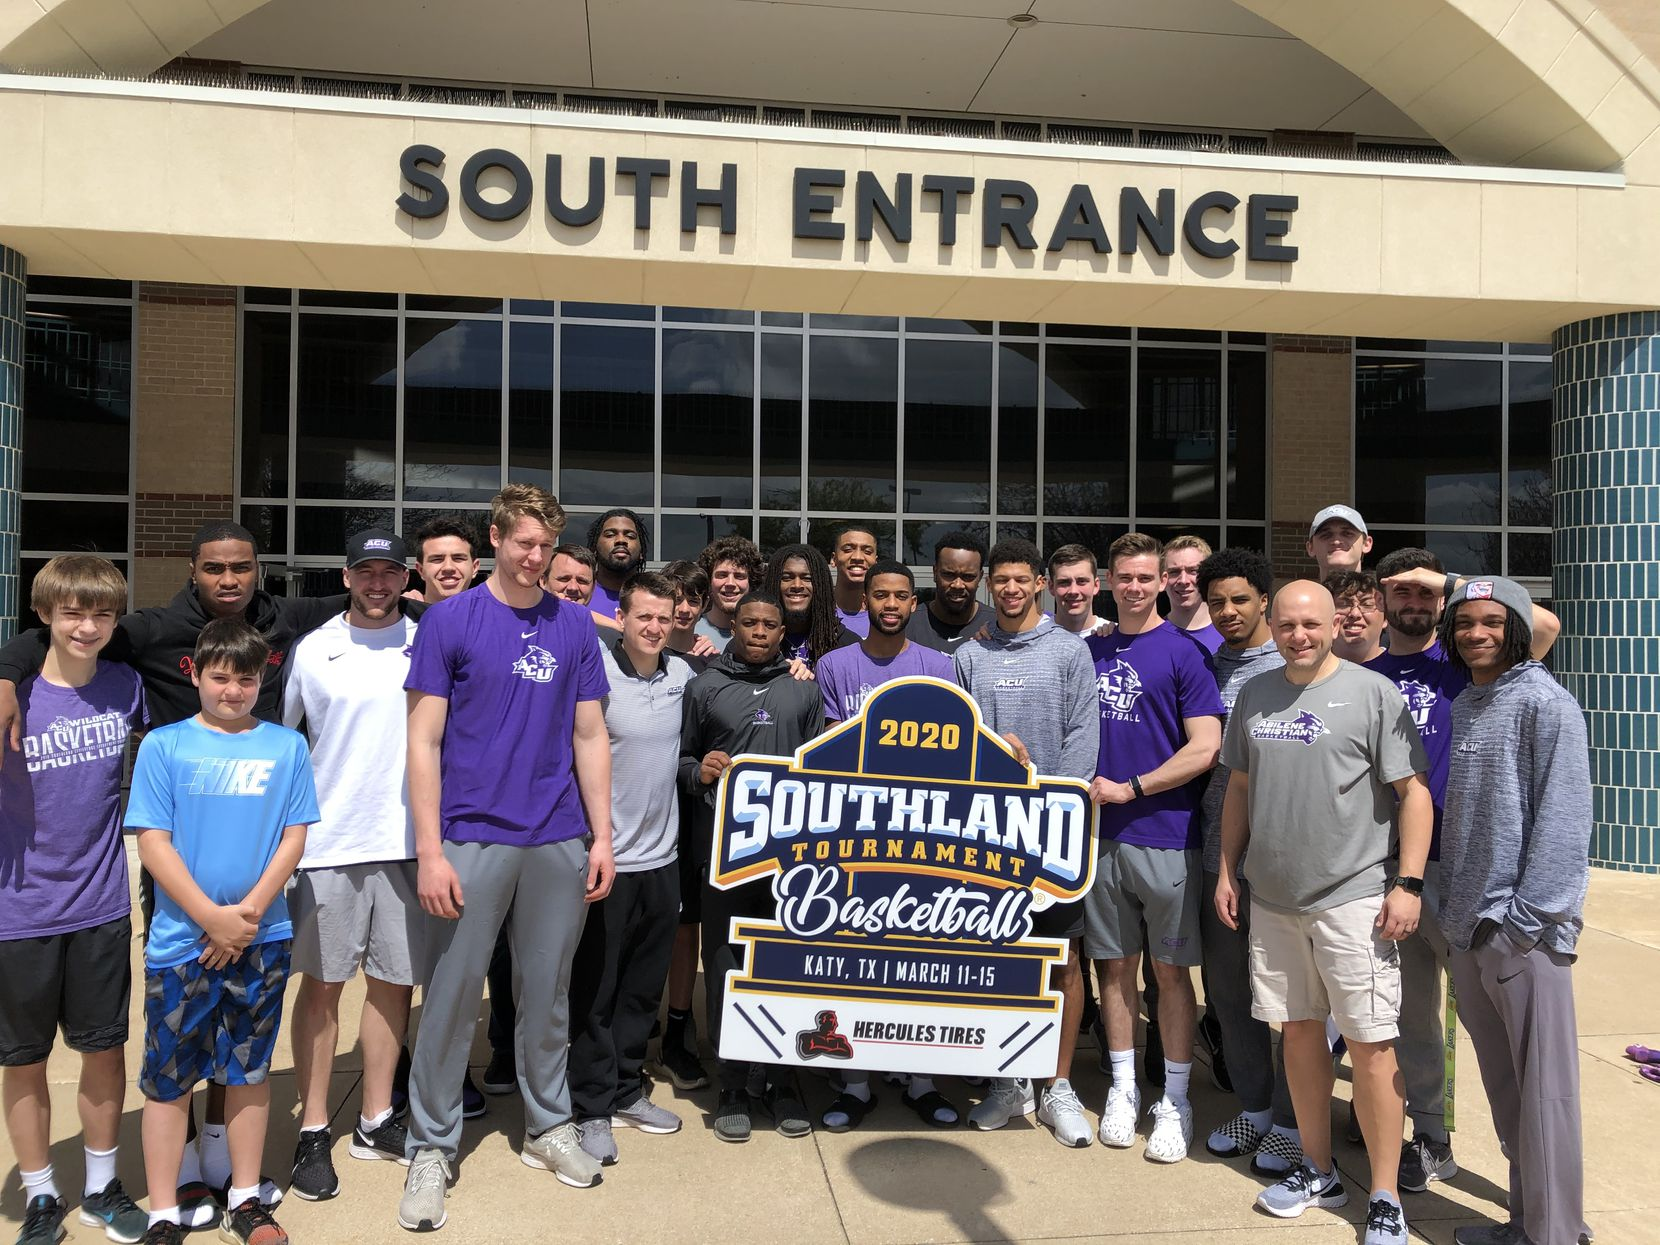 The Abilene Christian baseball team was 15-5 in the league last year. After the Southland Conference tournament was canceled on March 12, 2020, the team posed for a photo outside the arena.